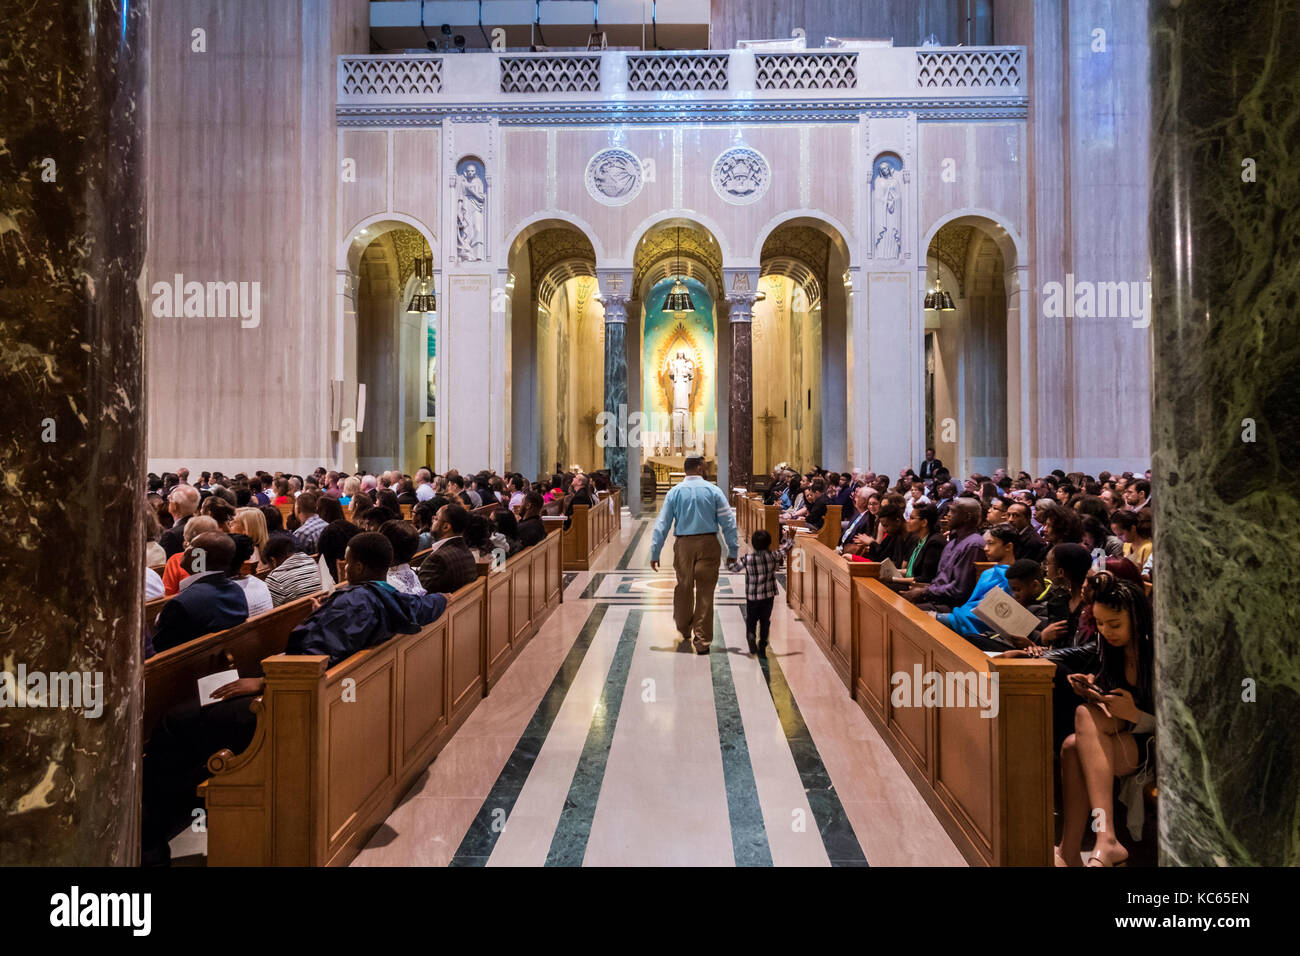 Washington DC District of Columbia Basilica of the National Shrine of the Immaculate Conception Catholic church Stock Photo